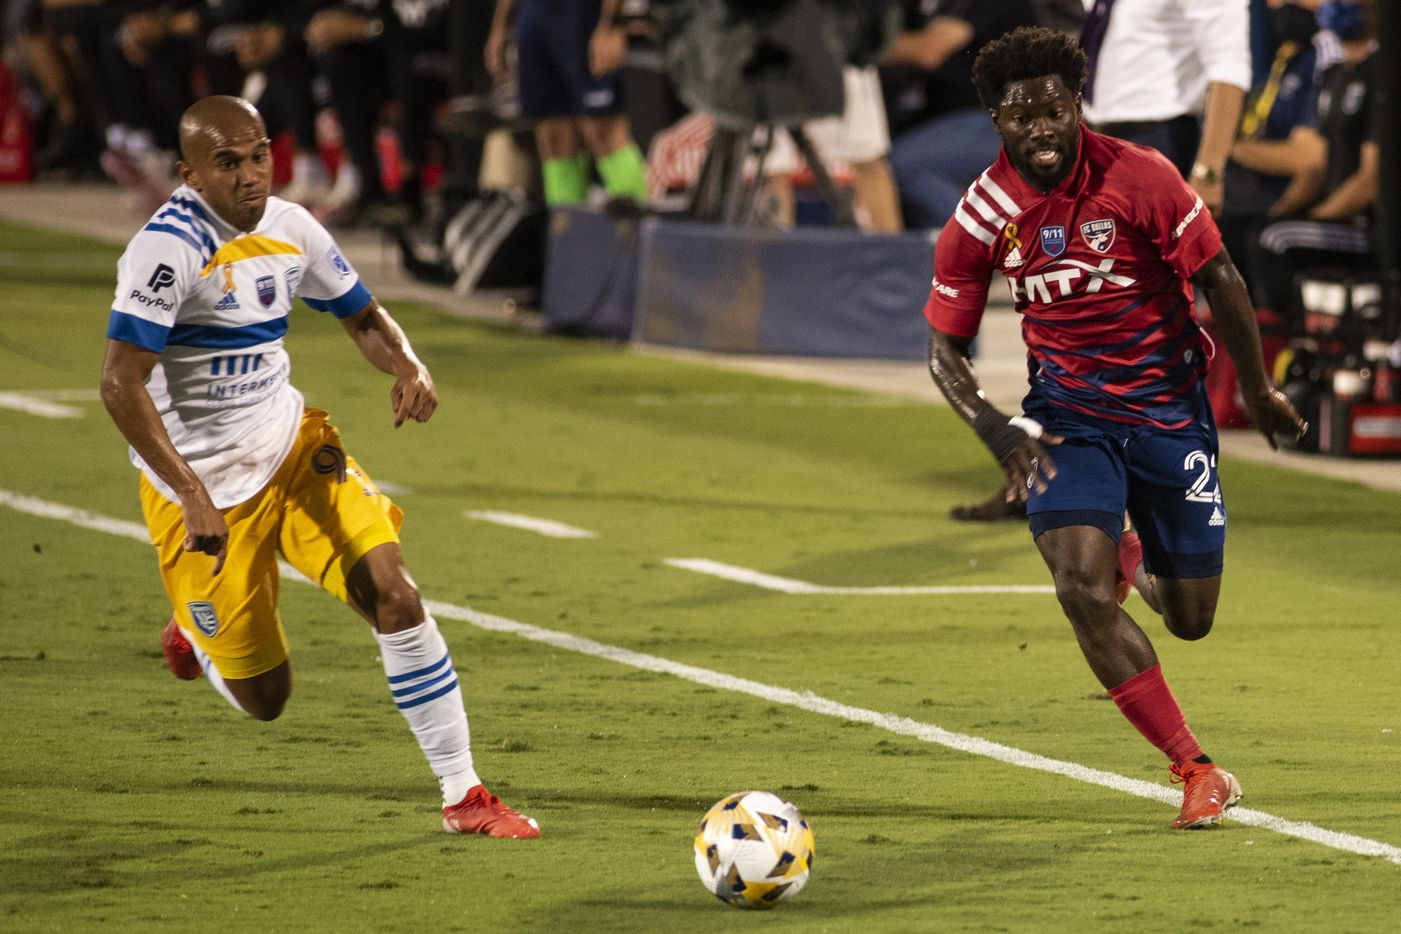 From left, San Jose midfielder Judson (93) and FC Dallas midfielder Ema Twumasi (22) race after the ball down the field during FC DallasÕ home game against the San Jose Earthquakes at Toyota Stadium in Frisco, Texas on Saturday, September 11, 2021. (Emil Lippe/Special Contributor)